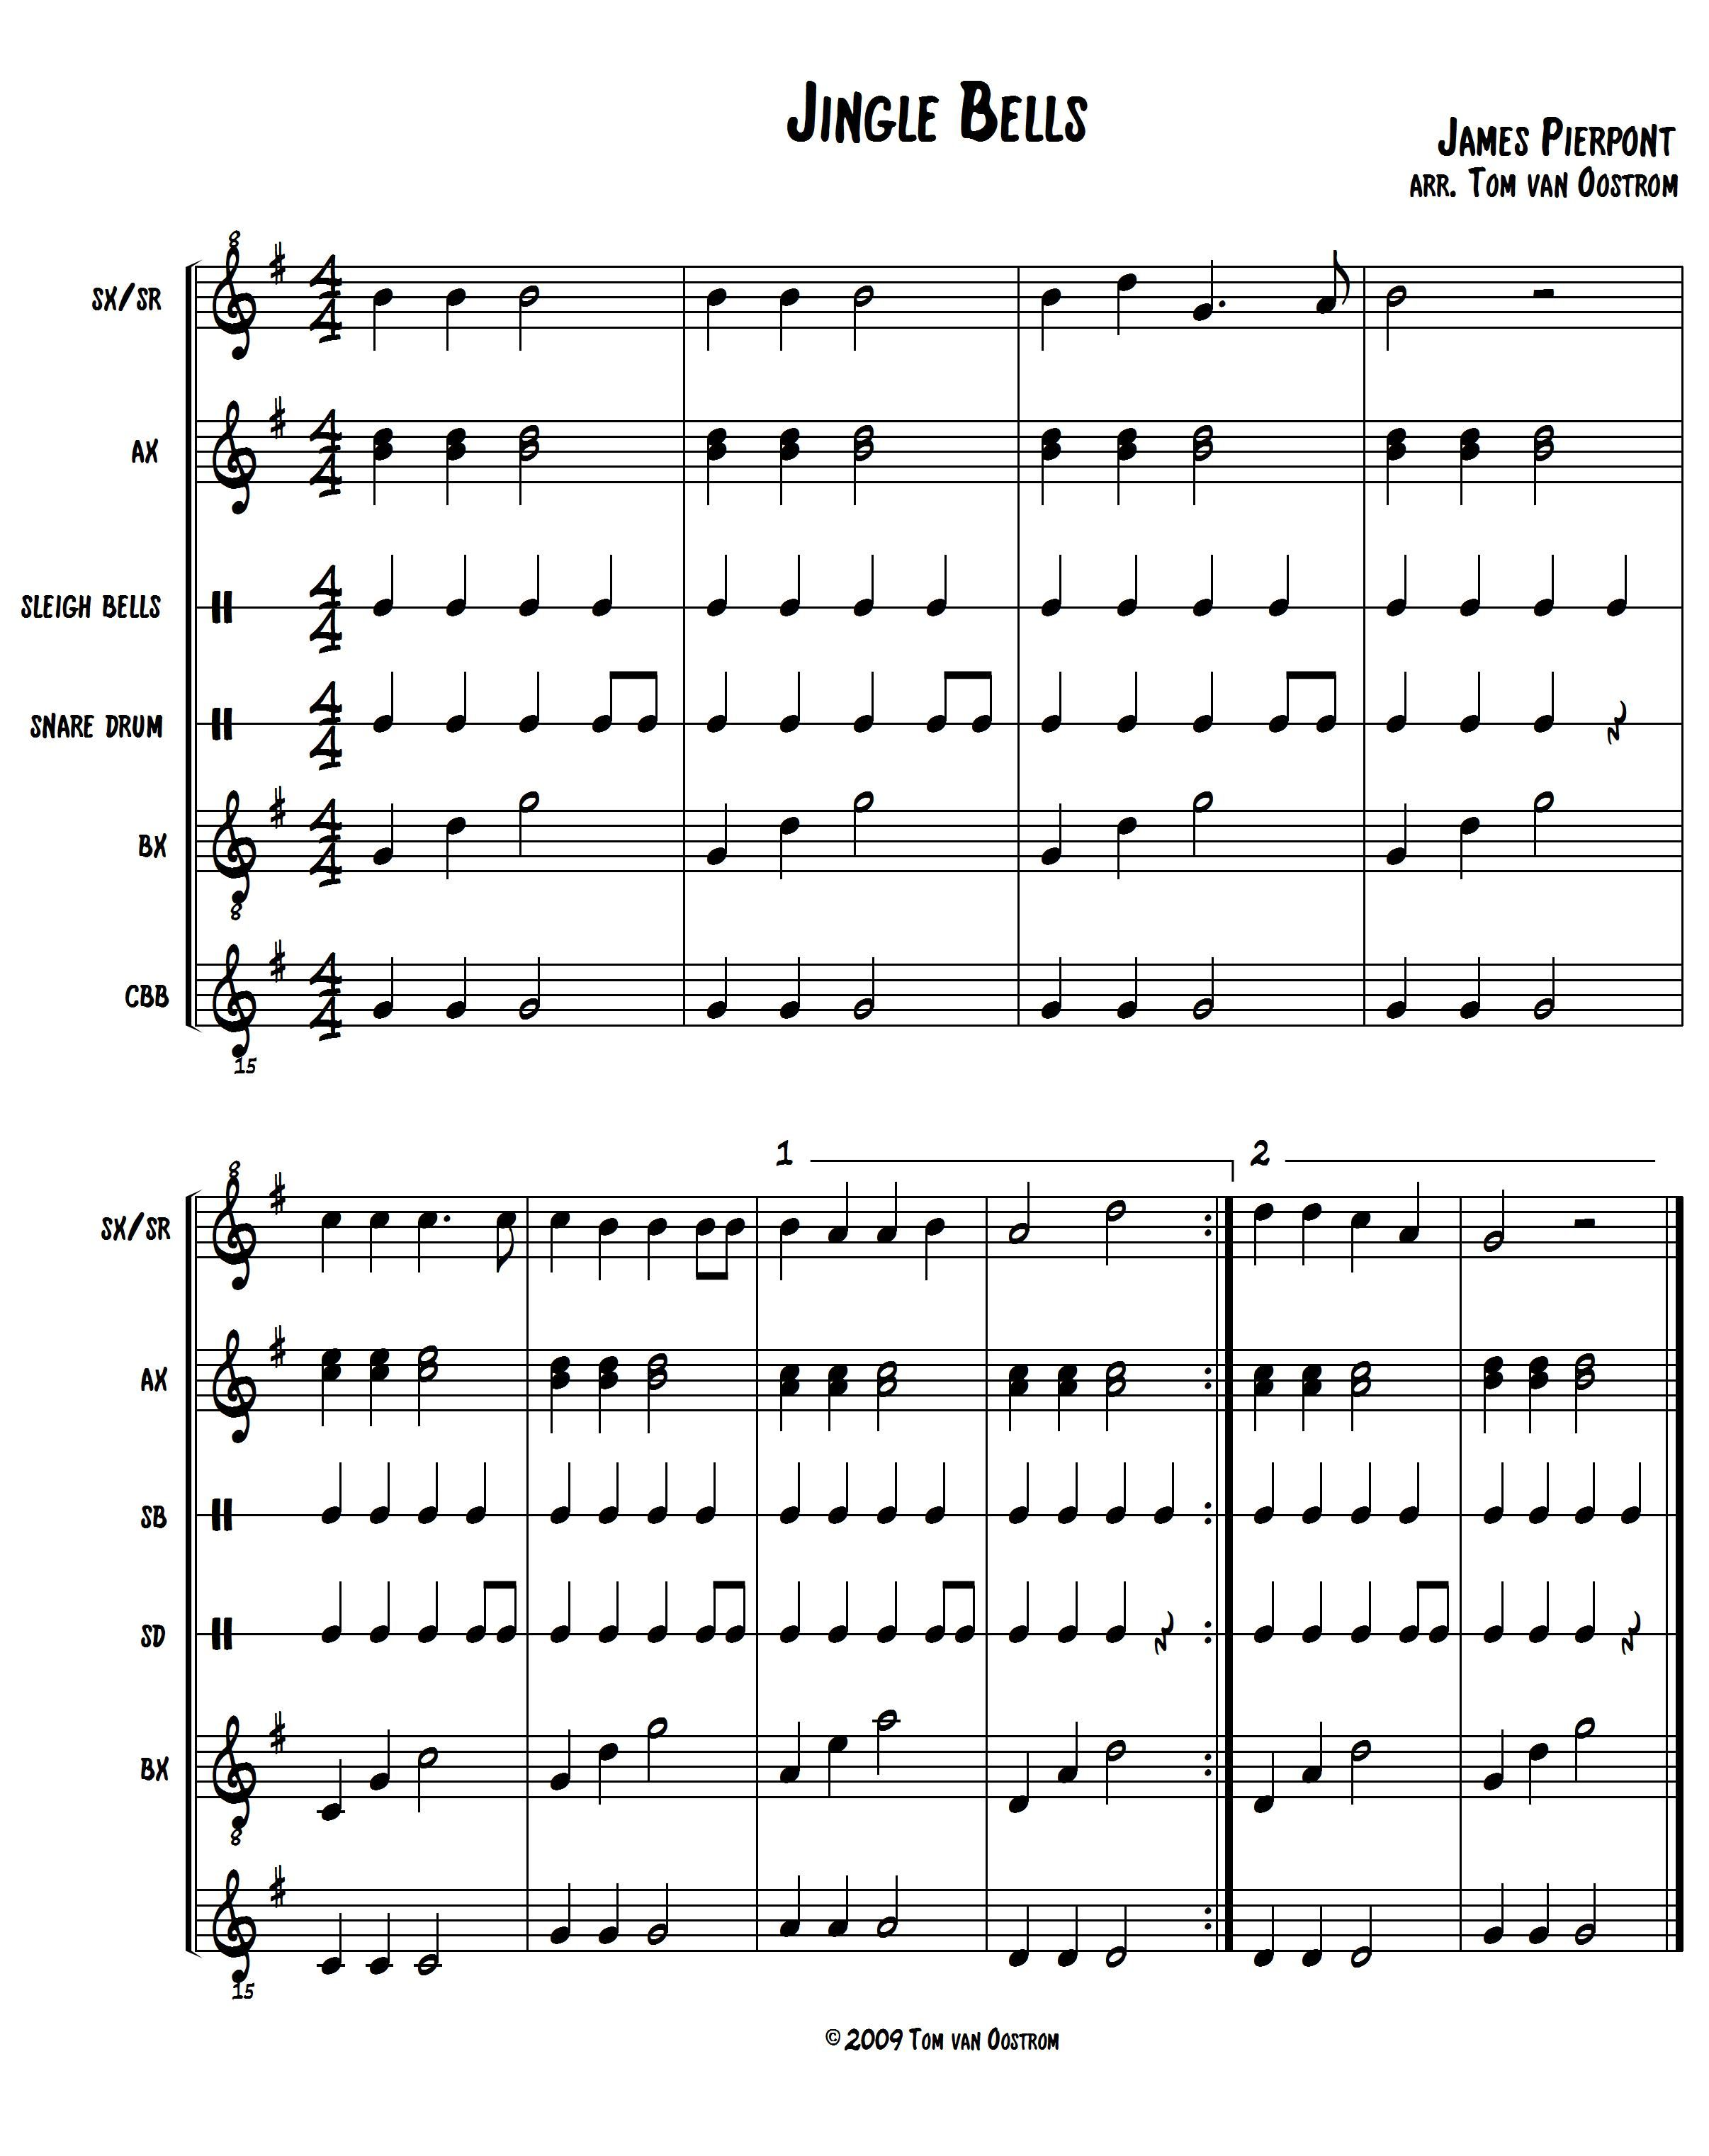 Jingle Bells Orff Arrangement